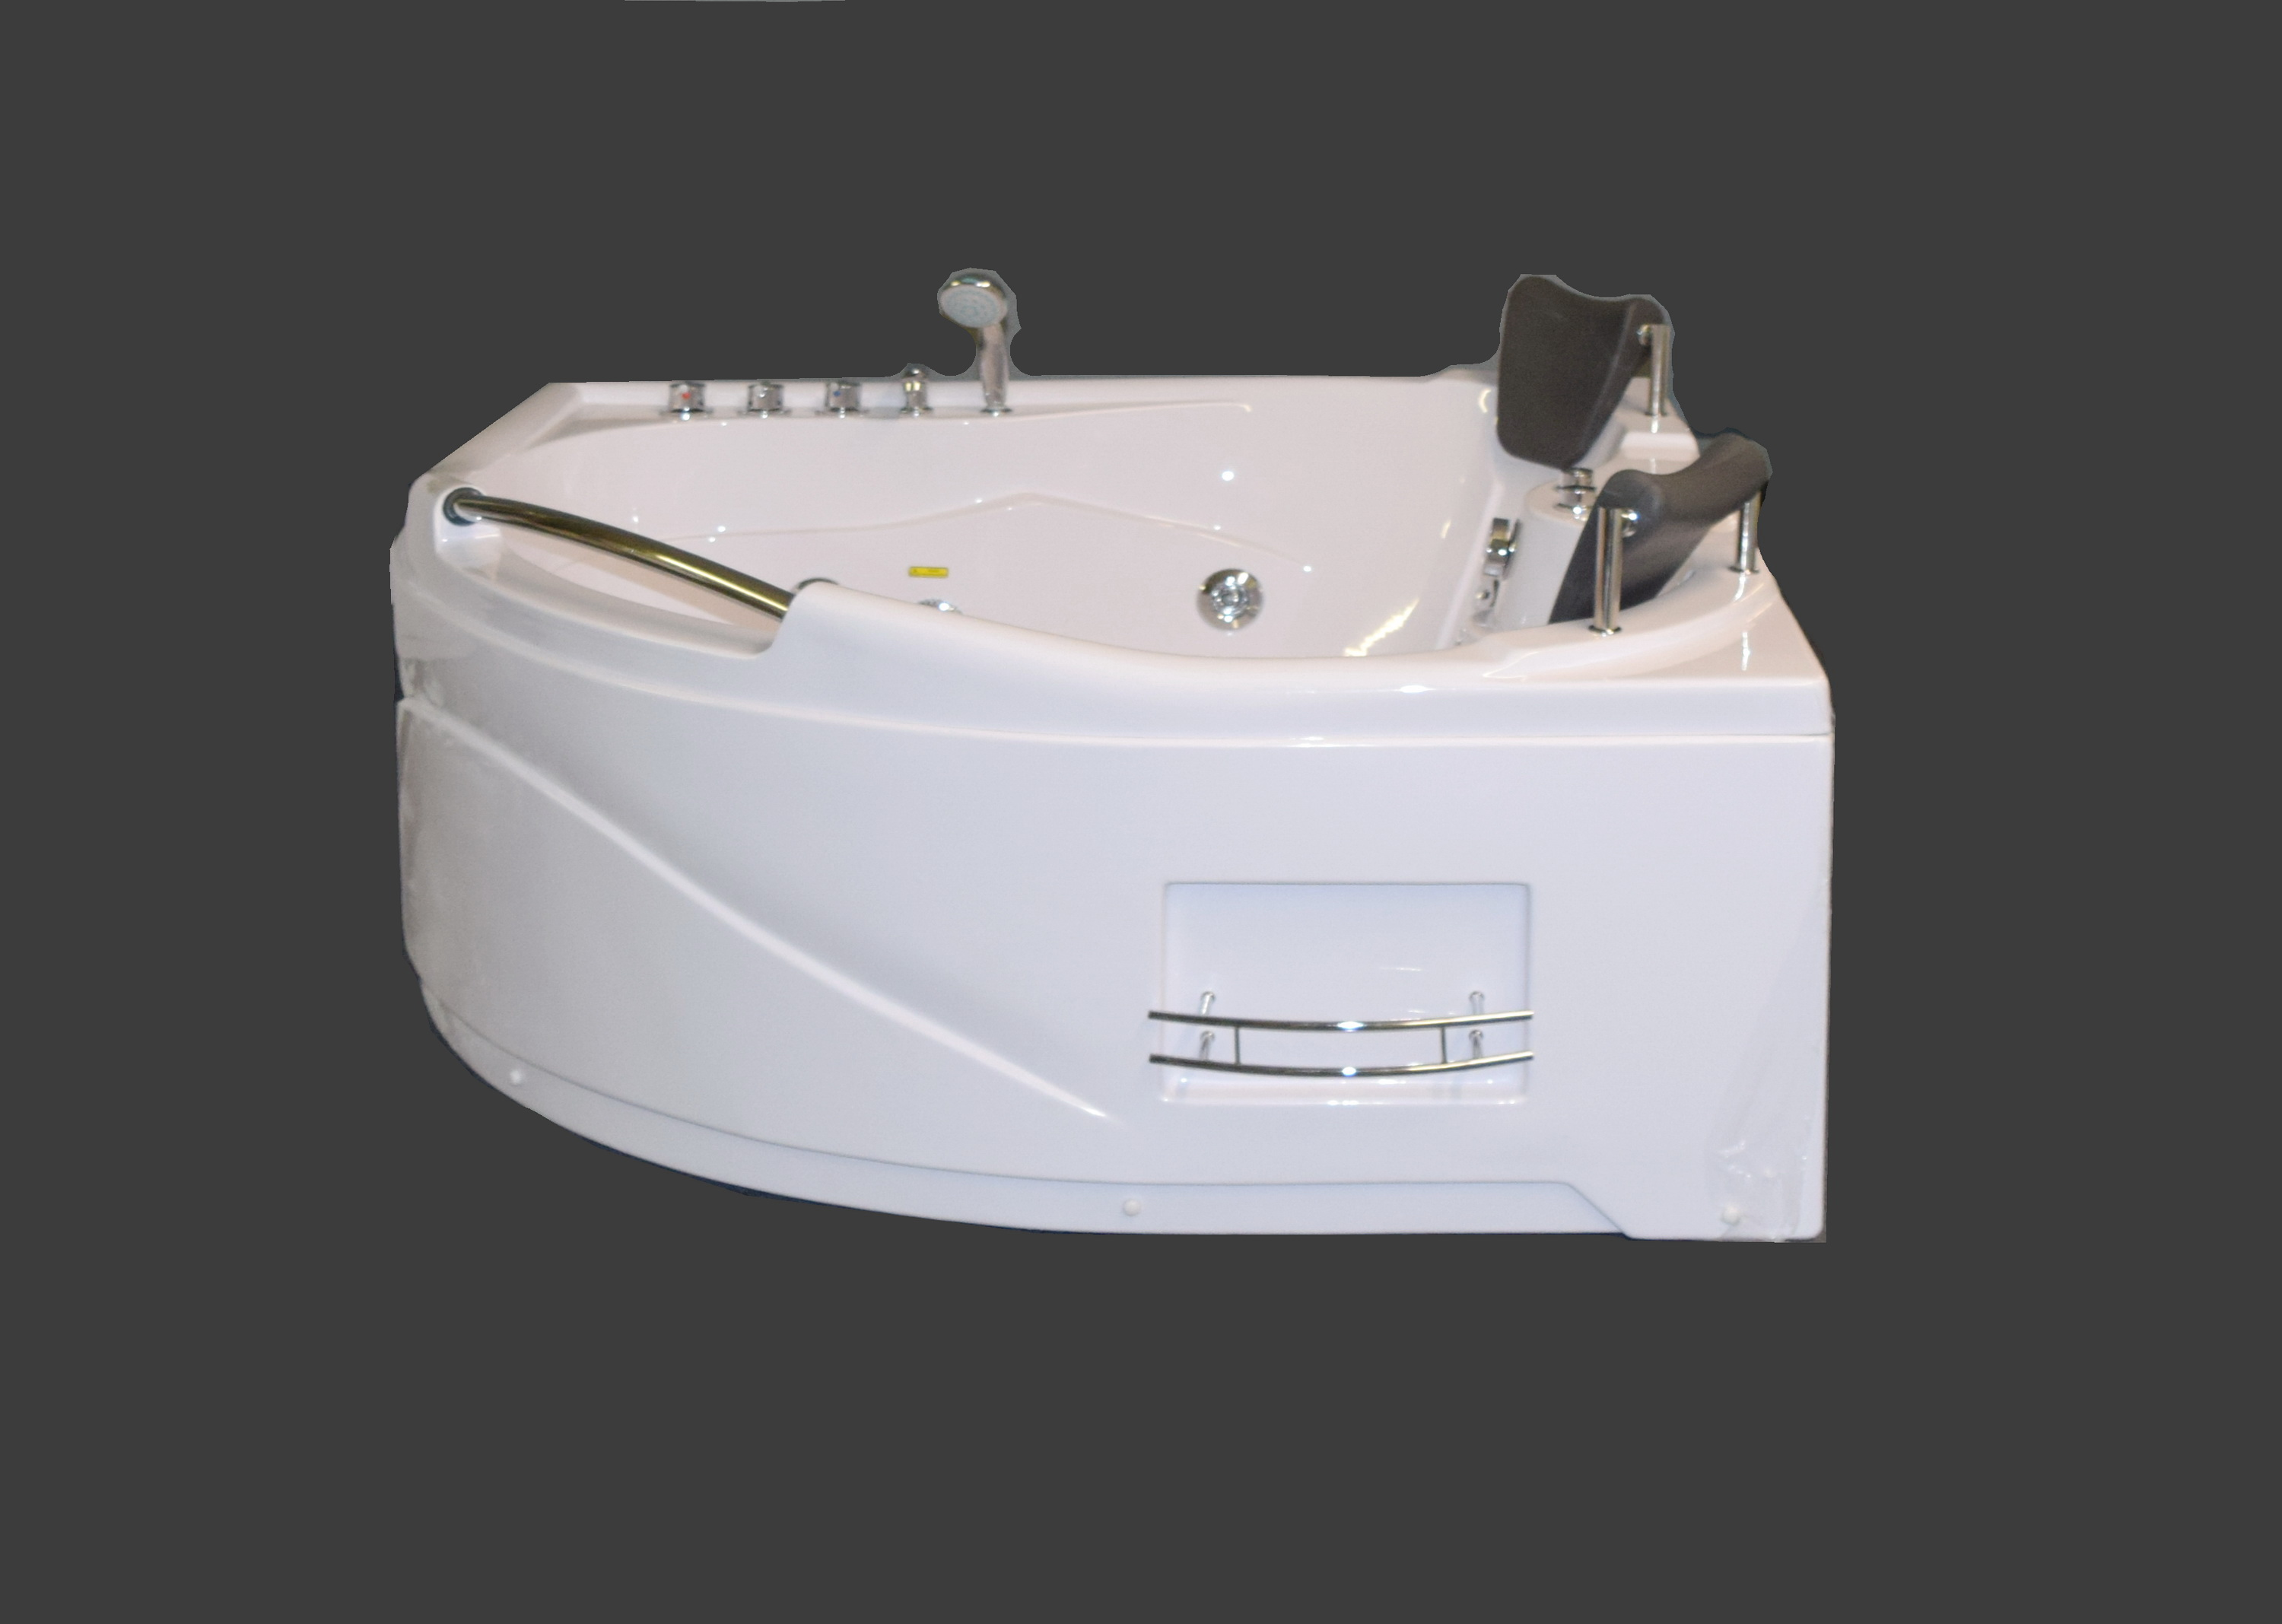 Corner Jetted Bathtub Whirlpool T005 Best For Bath